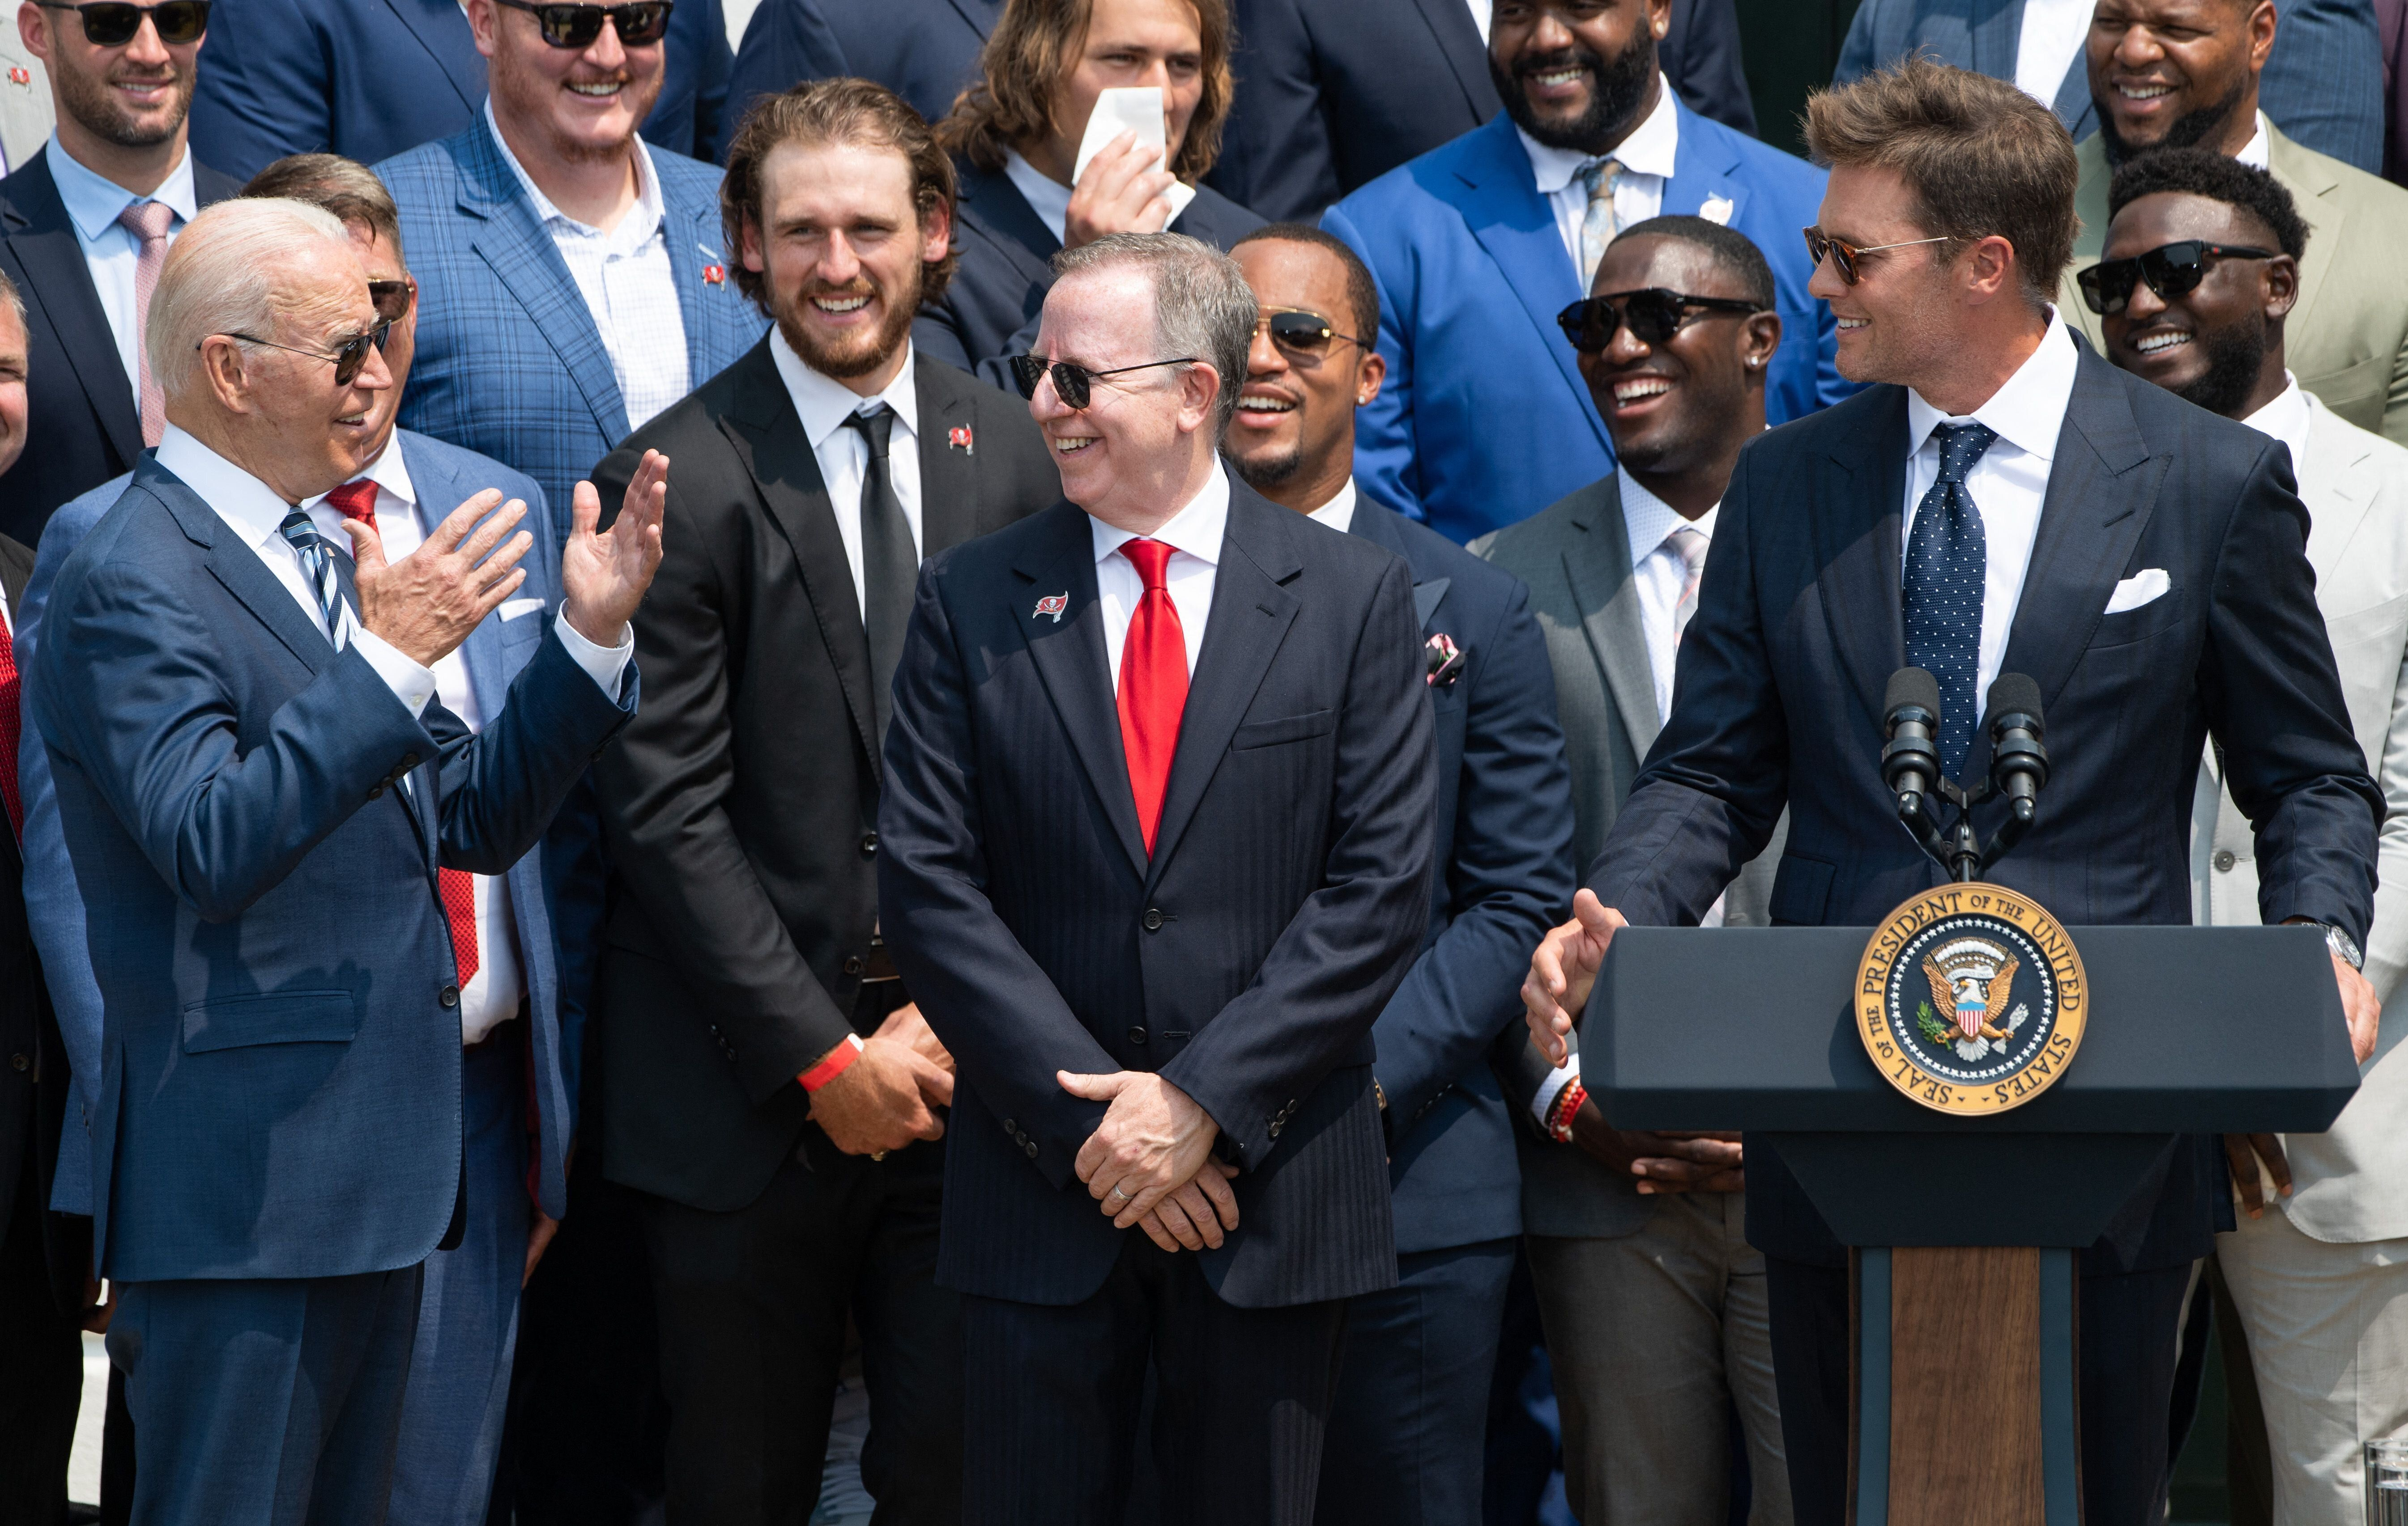 President Joe Biden interacts with Tom Brady and his teammates during a ceremony honoring the Tampa Bay Buccaneers for their